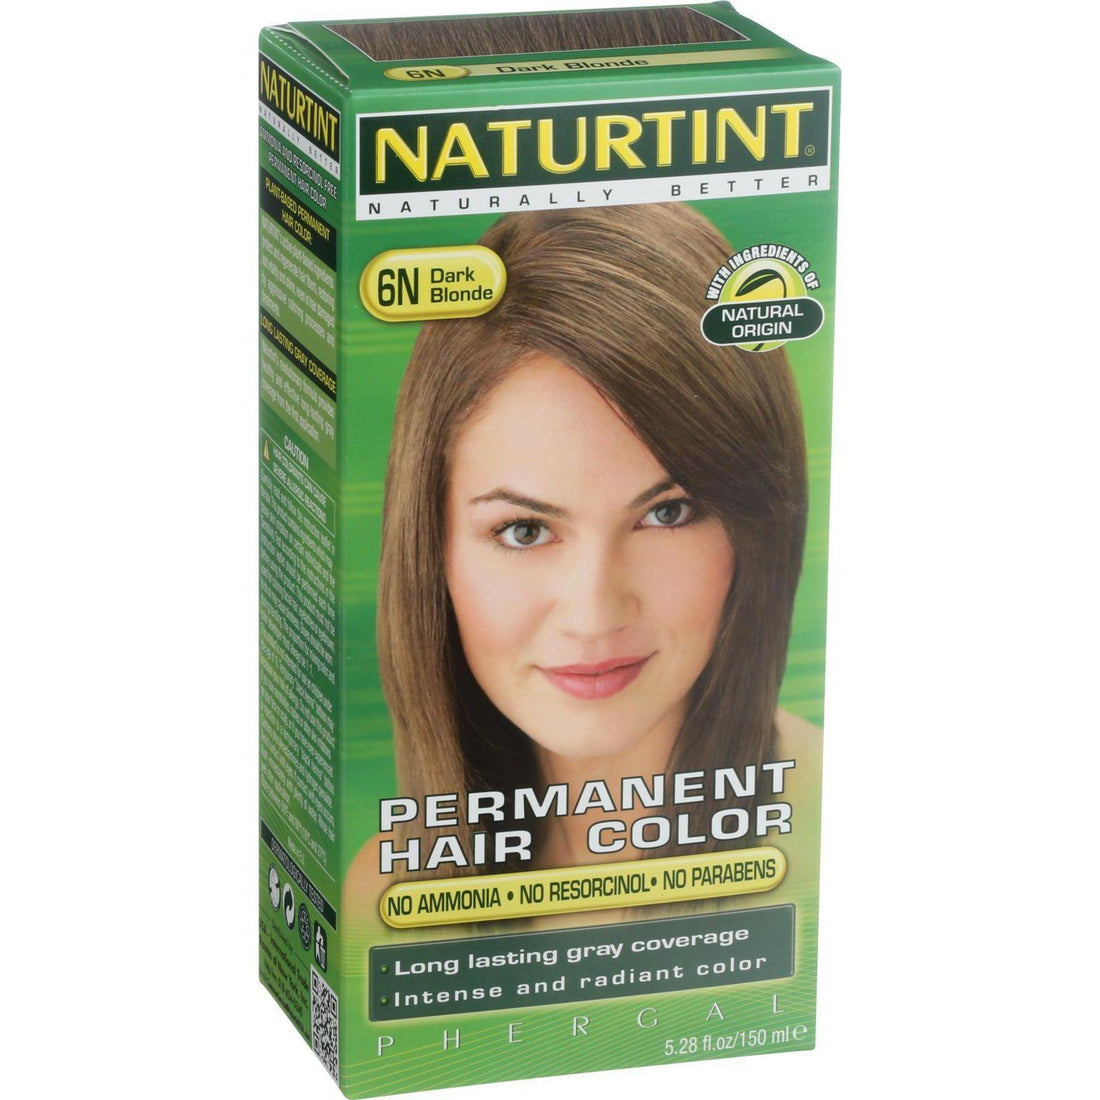 Mother Mantis: Dark Blonde (6n) Permanent Hair Color Naturtint